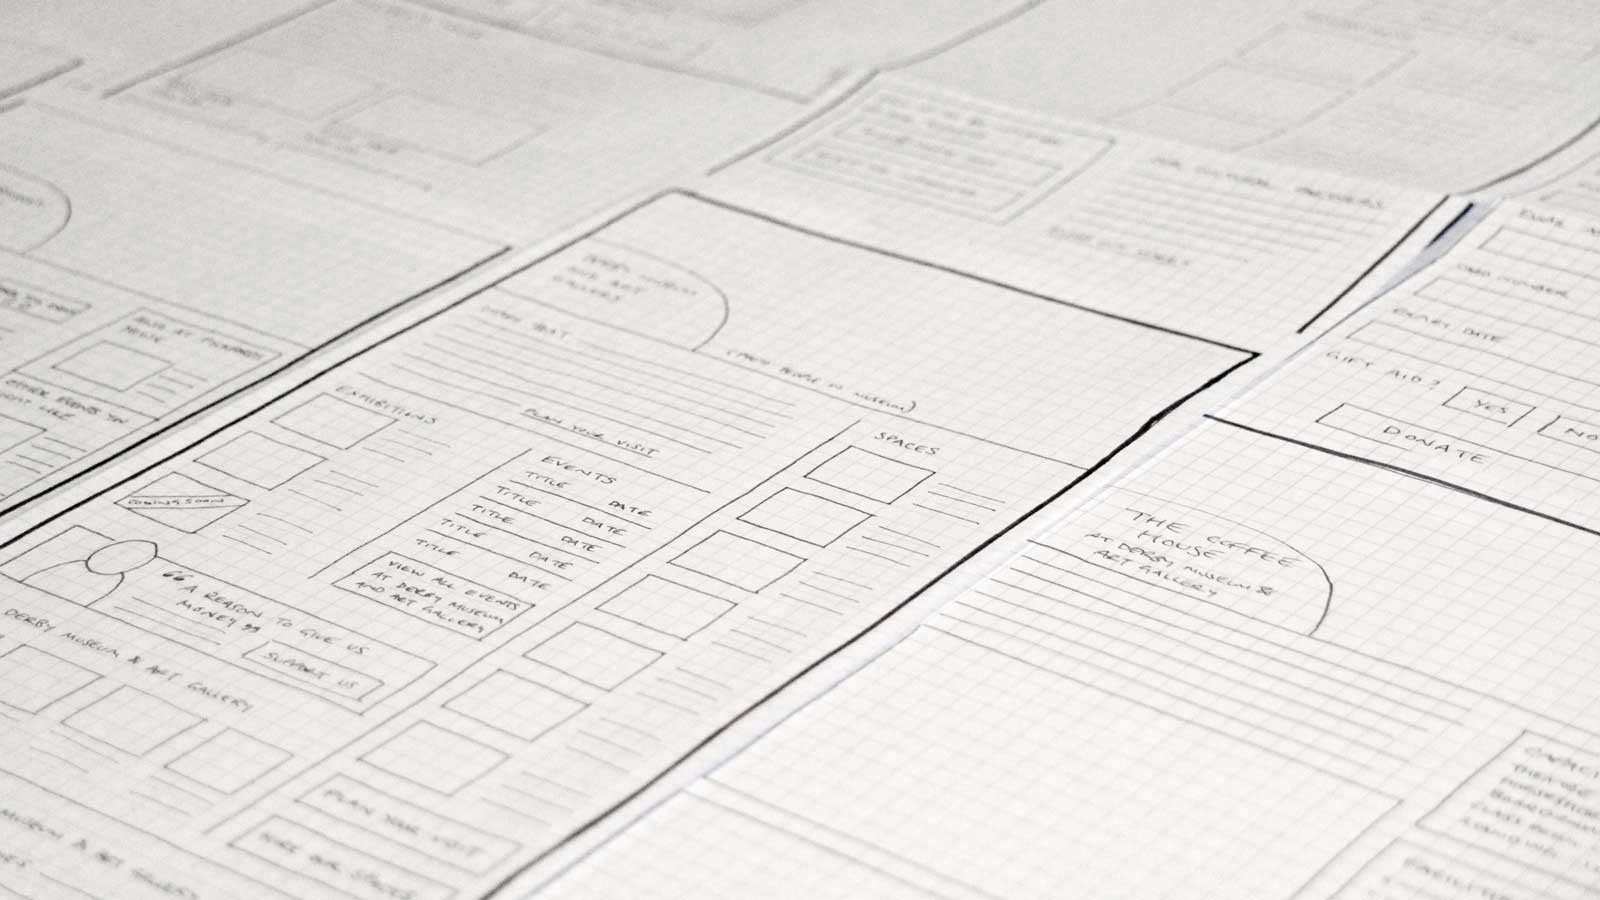 Photo of paper prototypes